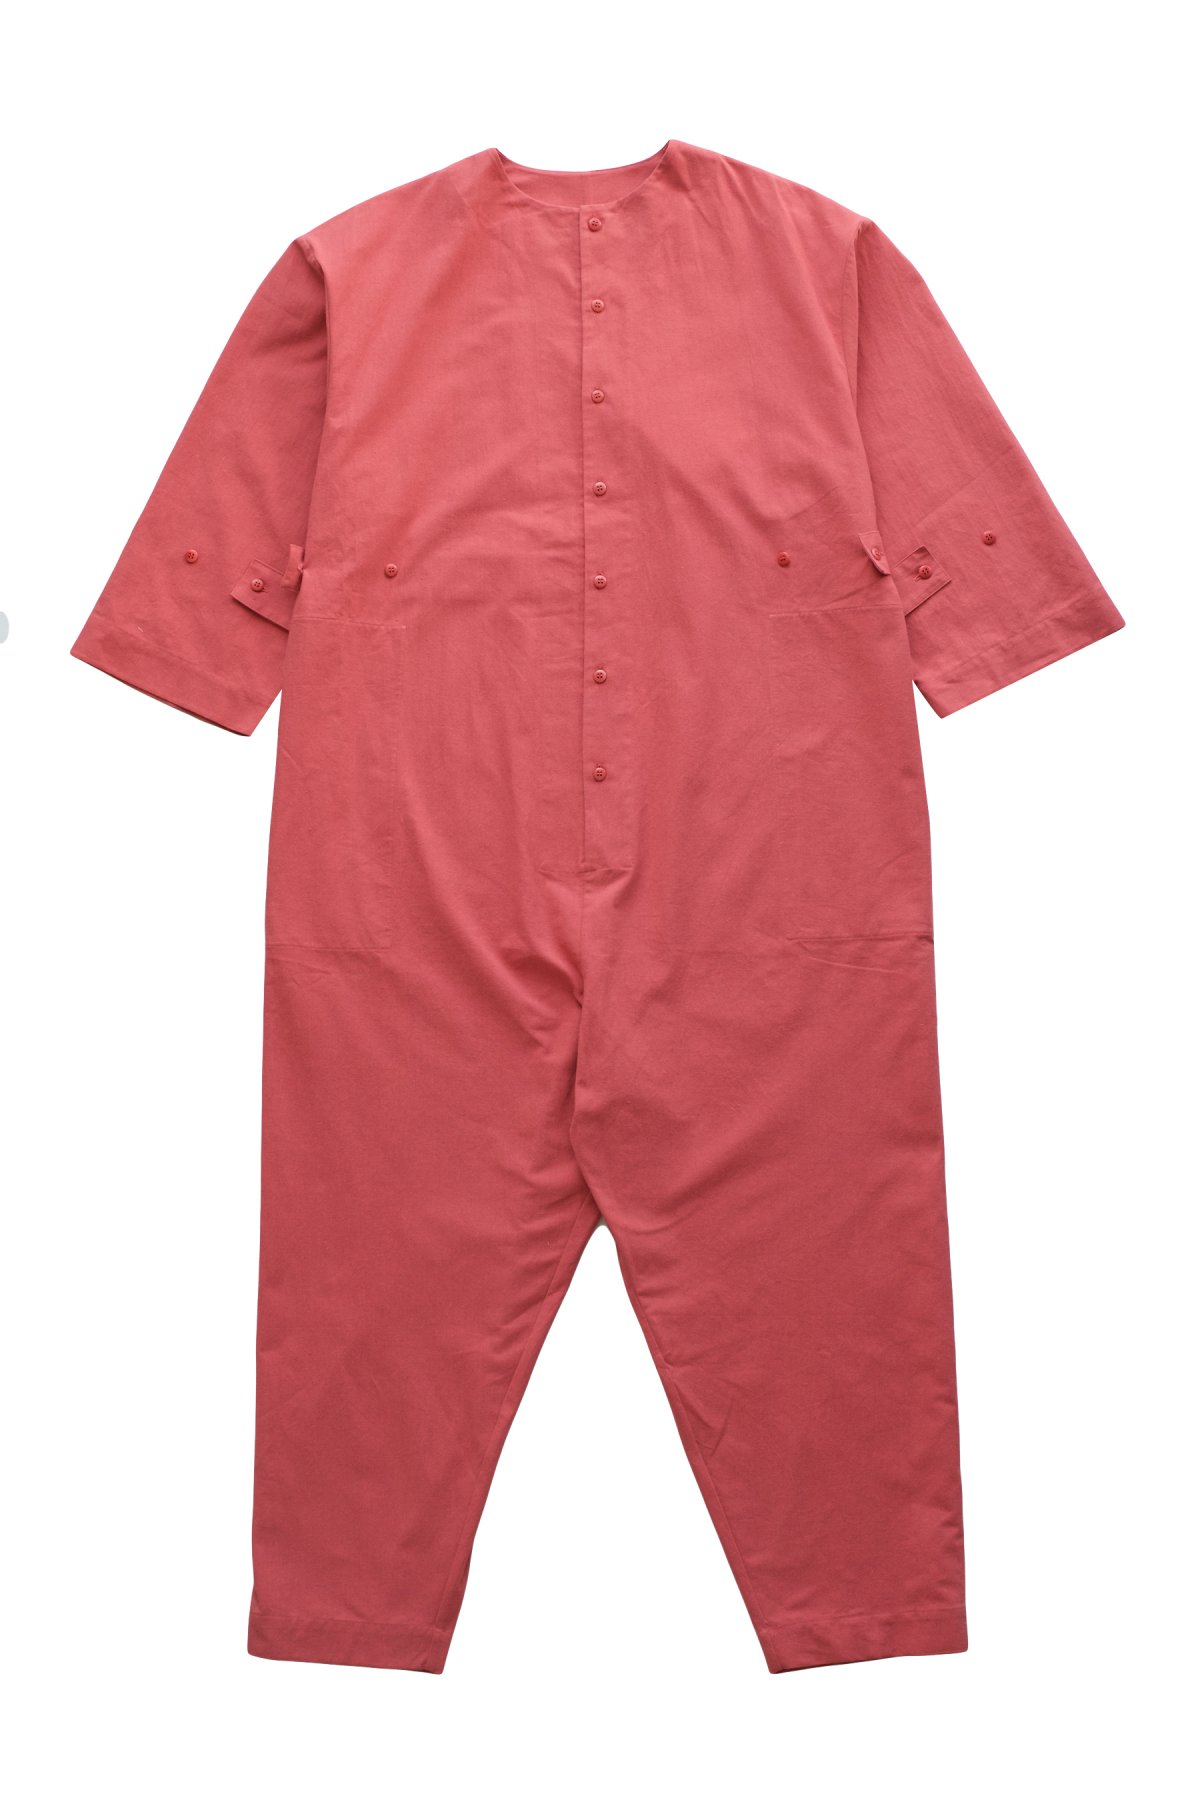 OVERALL - toogood - THE ELECTRICIAN OVERALL - CALICO MW - FLESH PINK - PRICE 101,200 tax-in